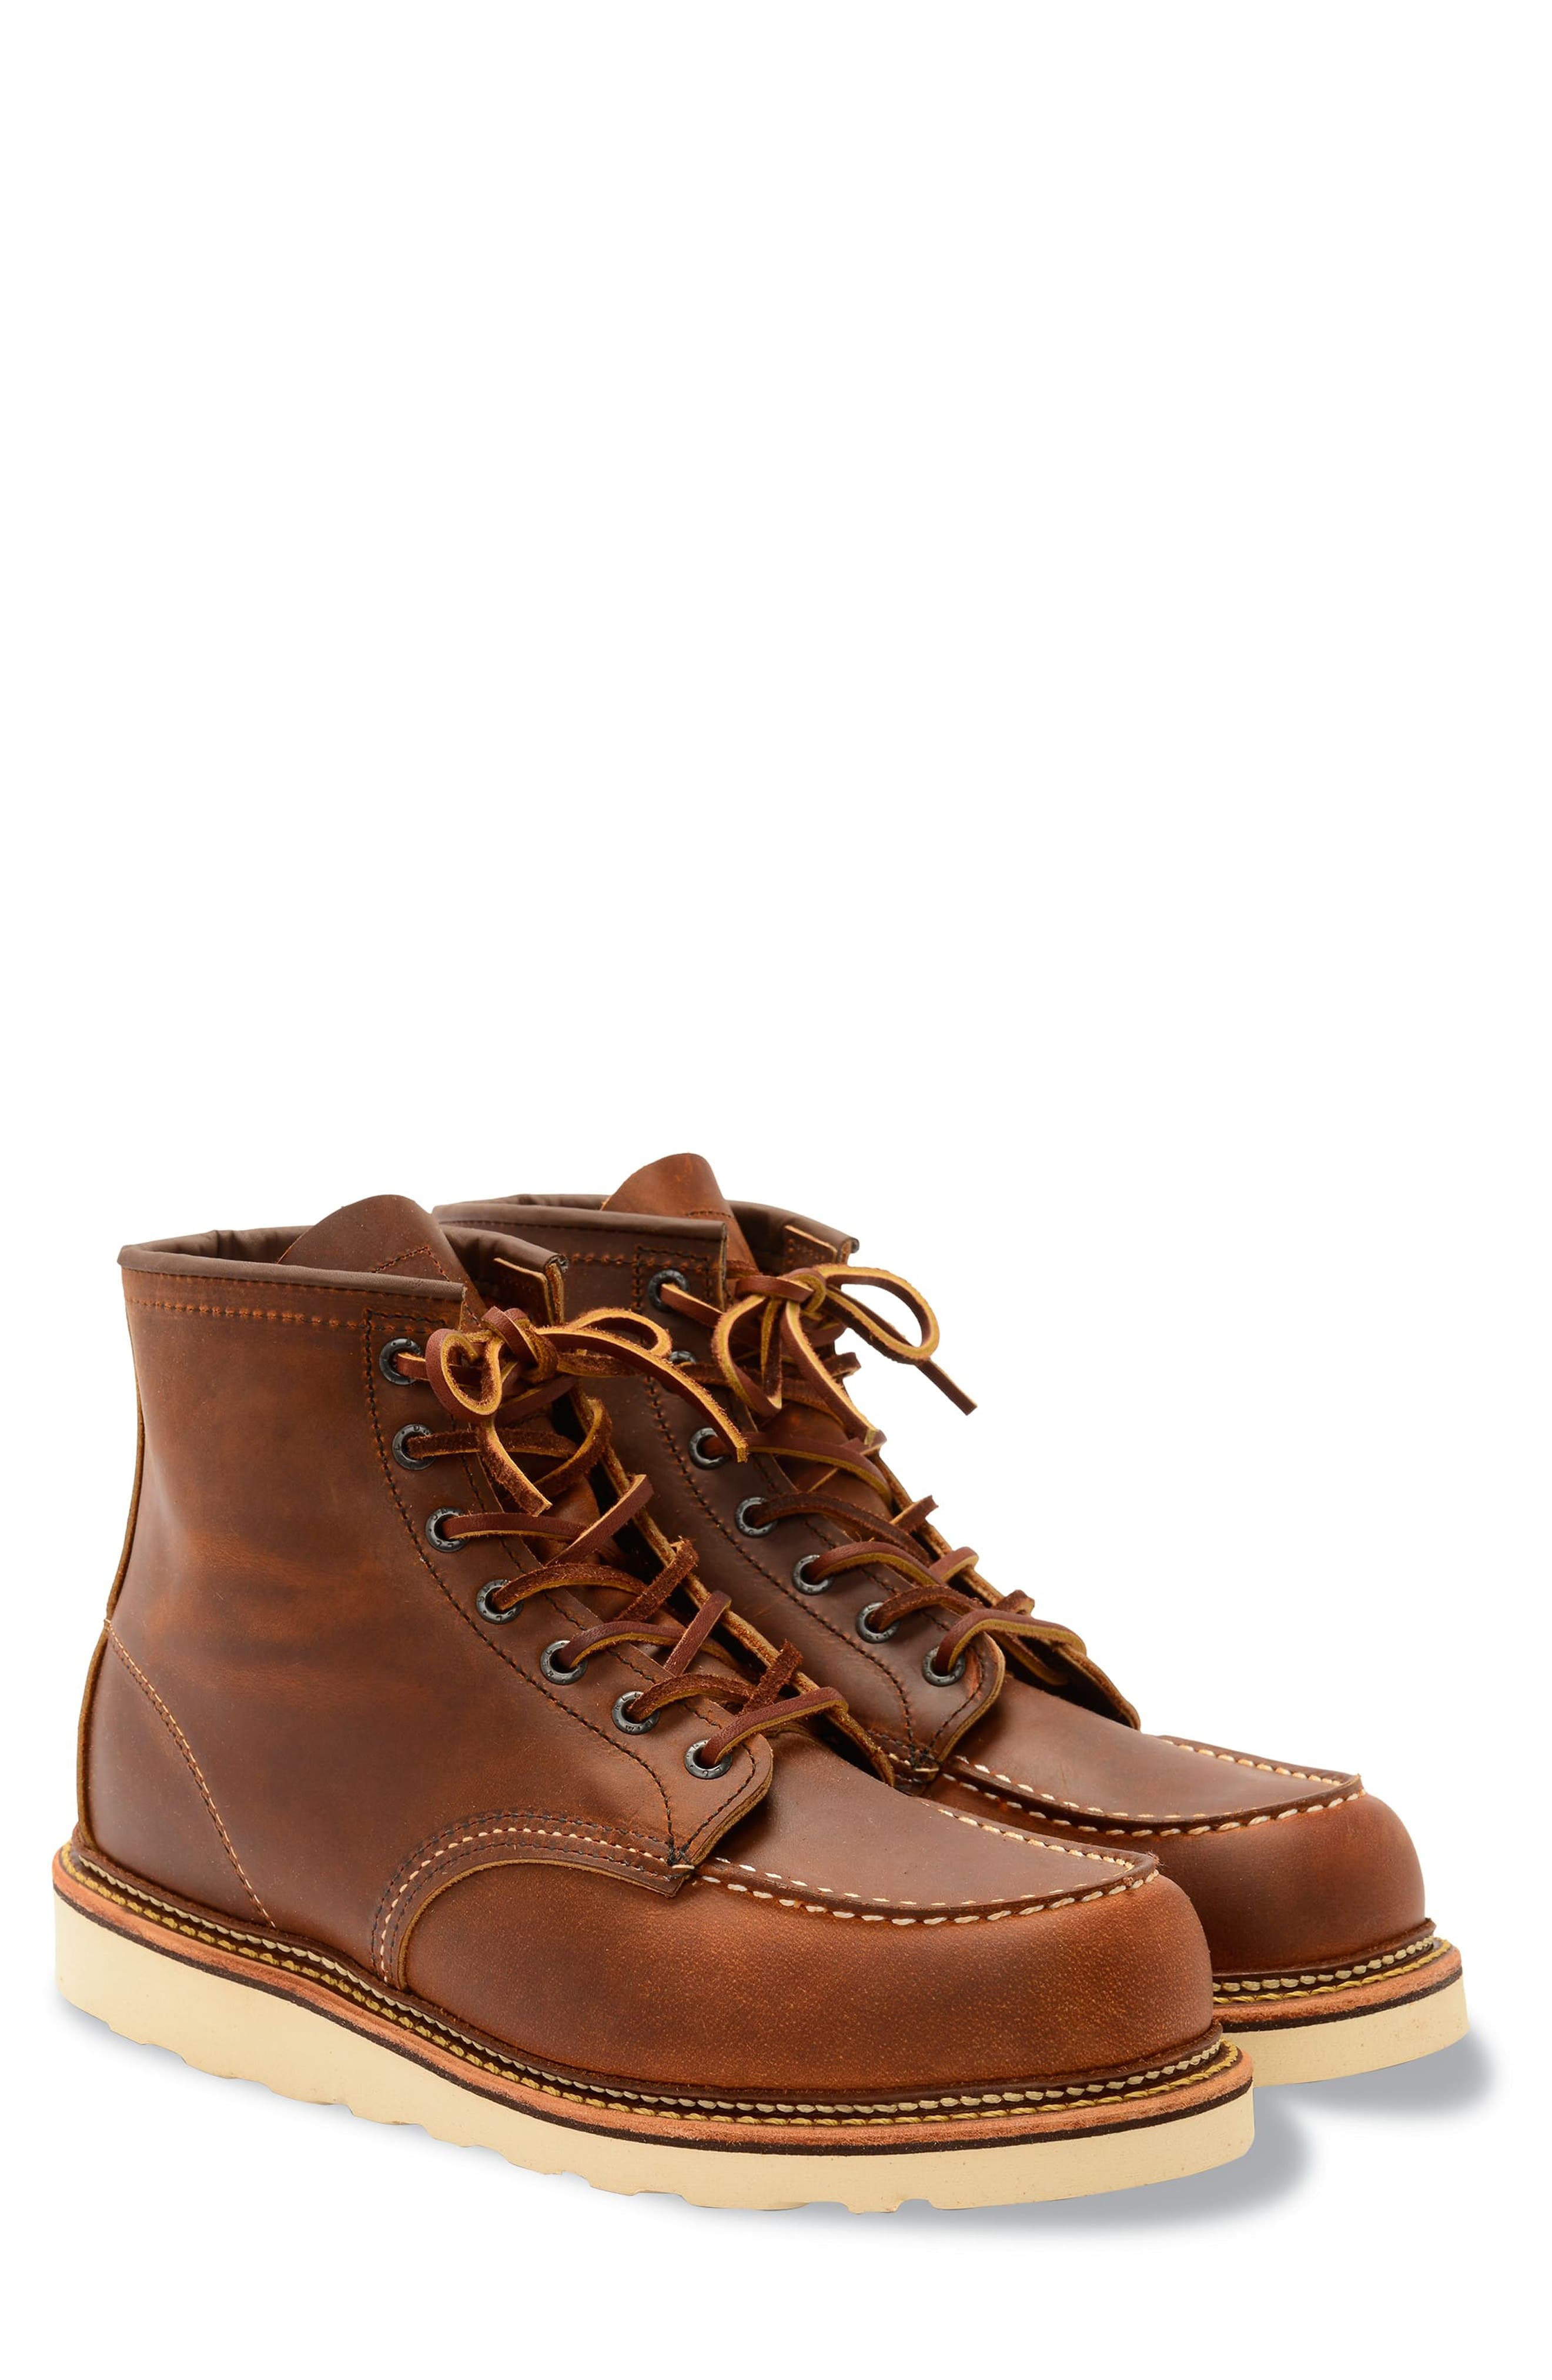 RED WING, Moc Toe Boot, Main thumbnail 1, color, COPPER BROWN- 1907